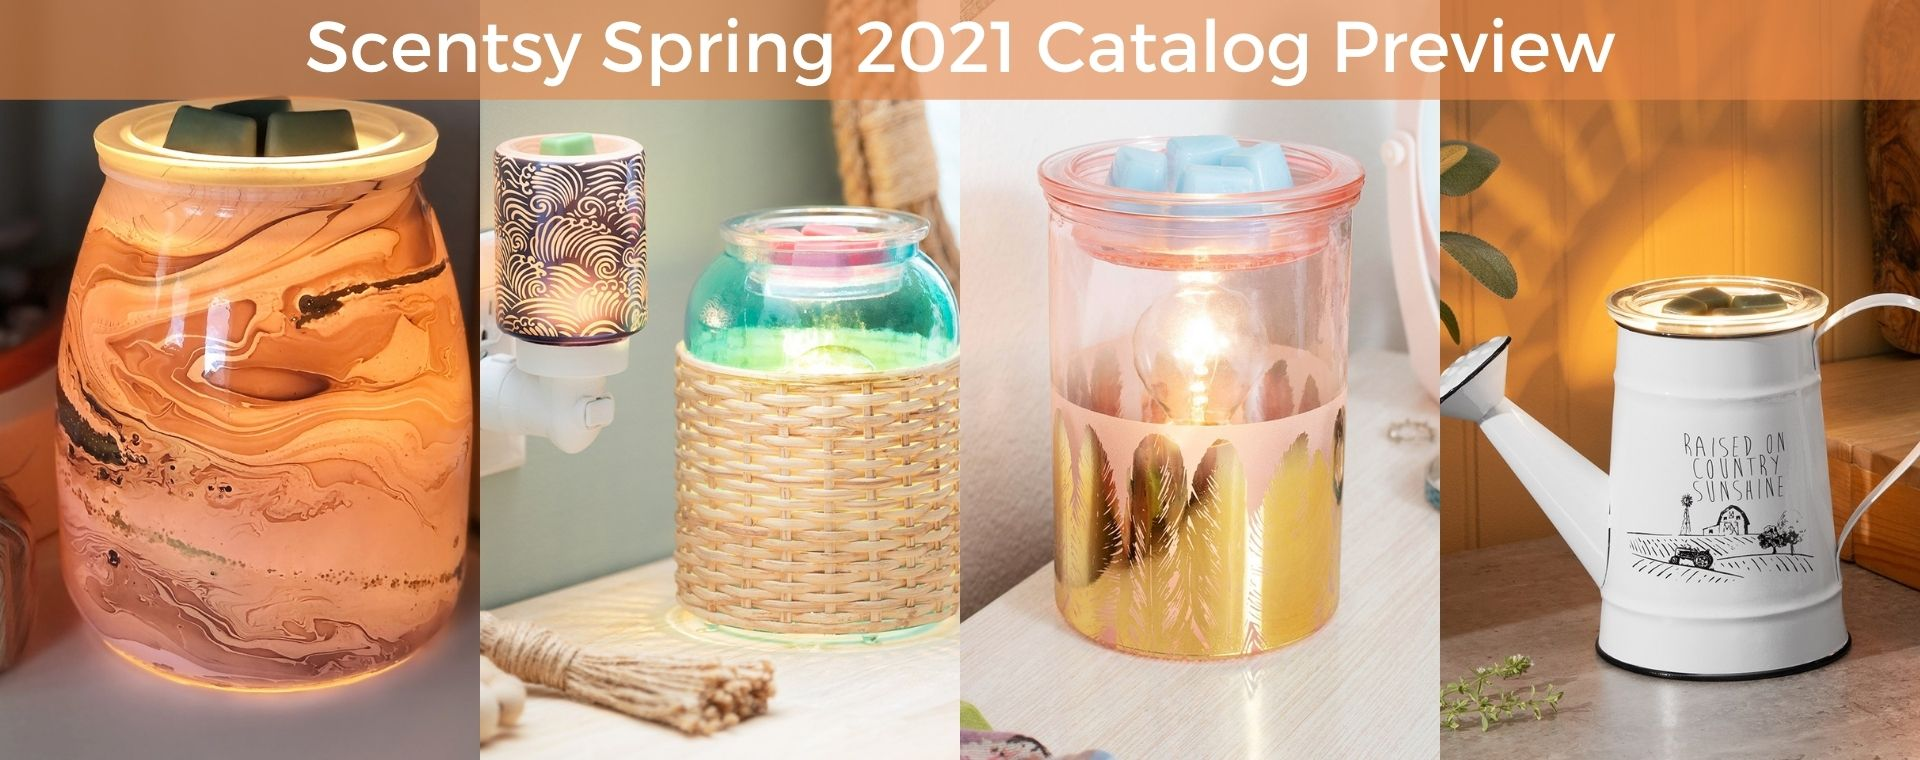 Scentsy Spring 2021 Catalog Preview 1